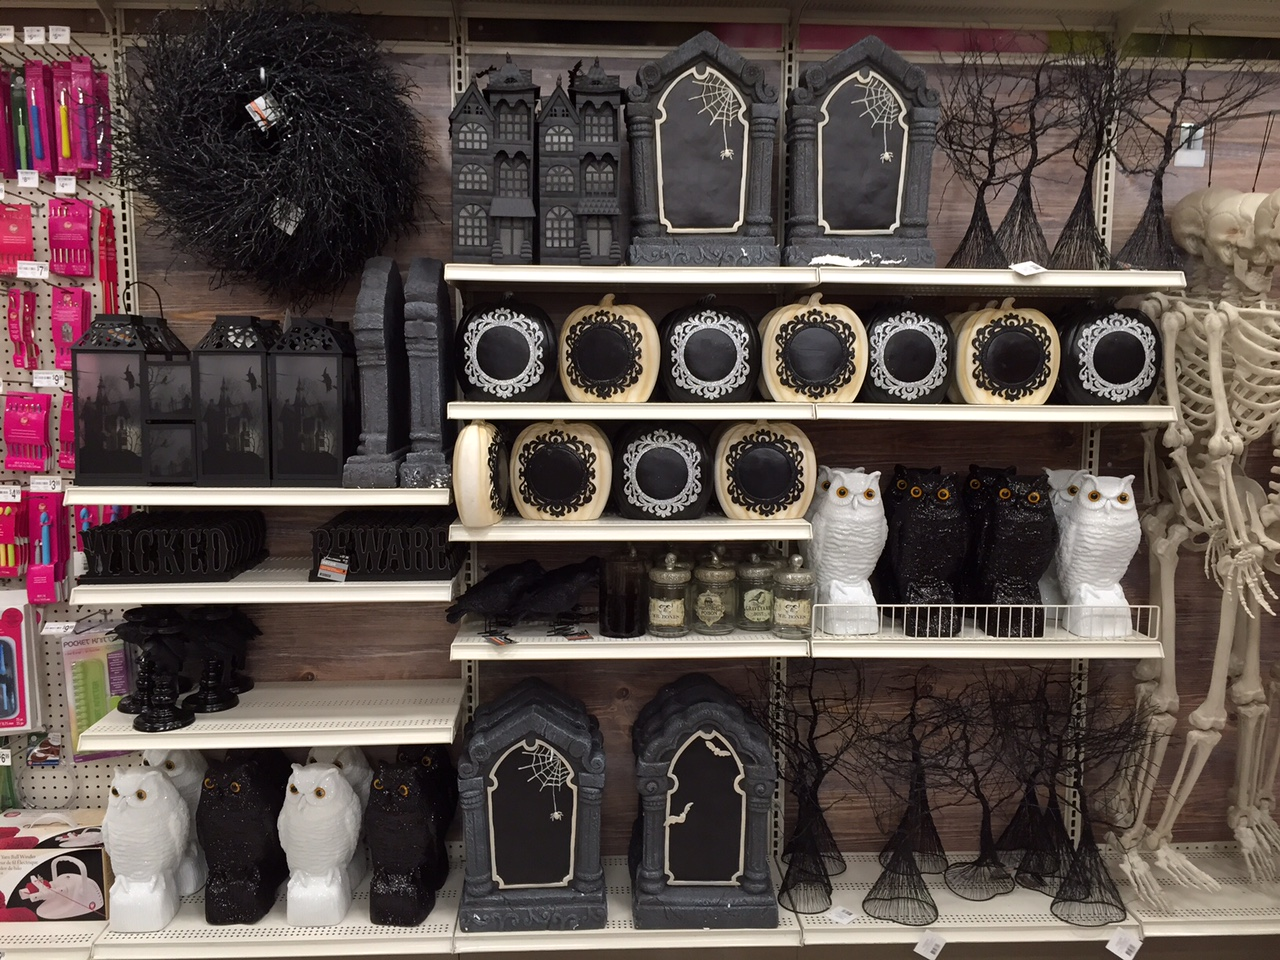 2015 halloween at michaels 2 - Michaels Halloween Decorations